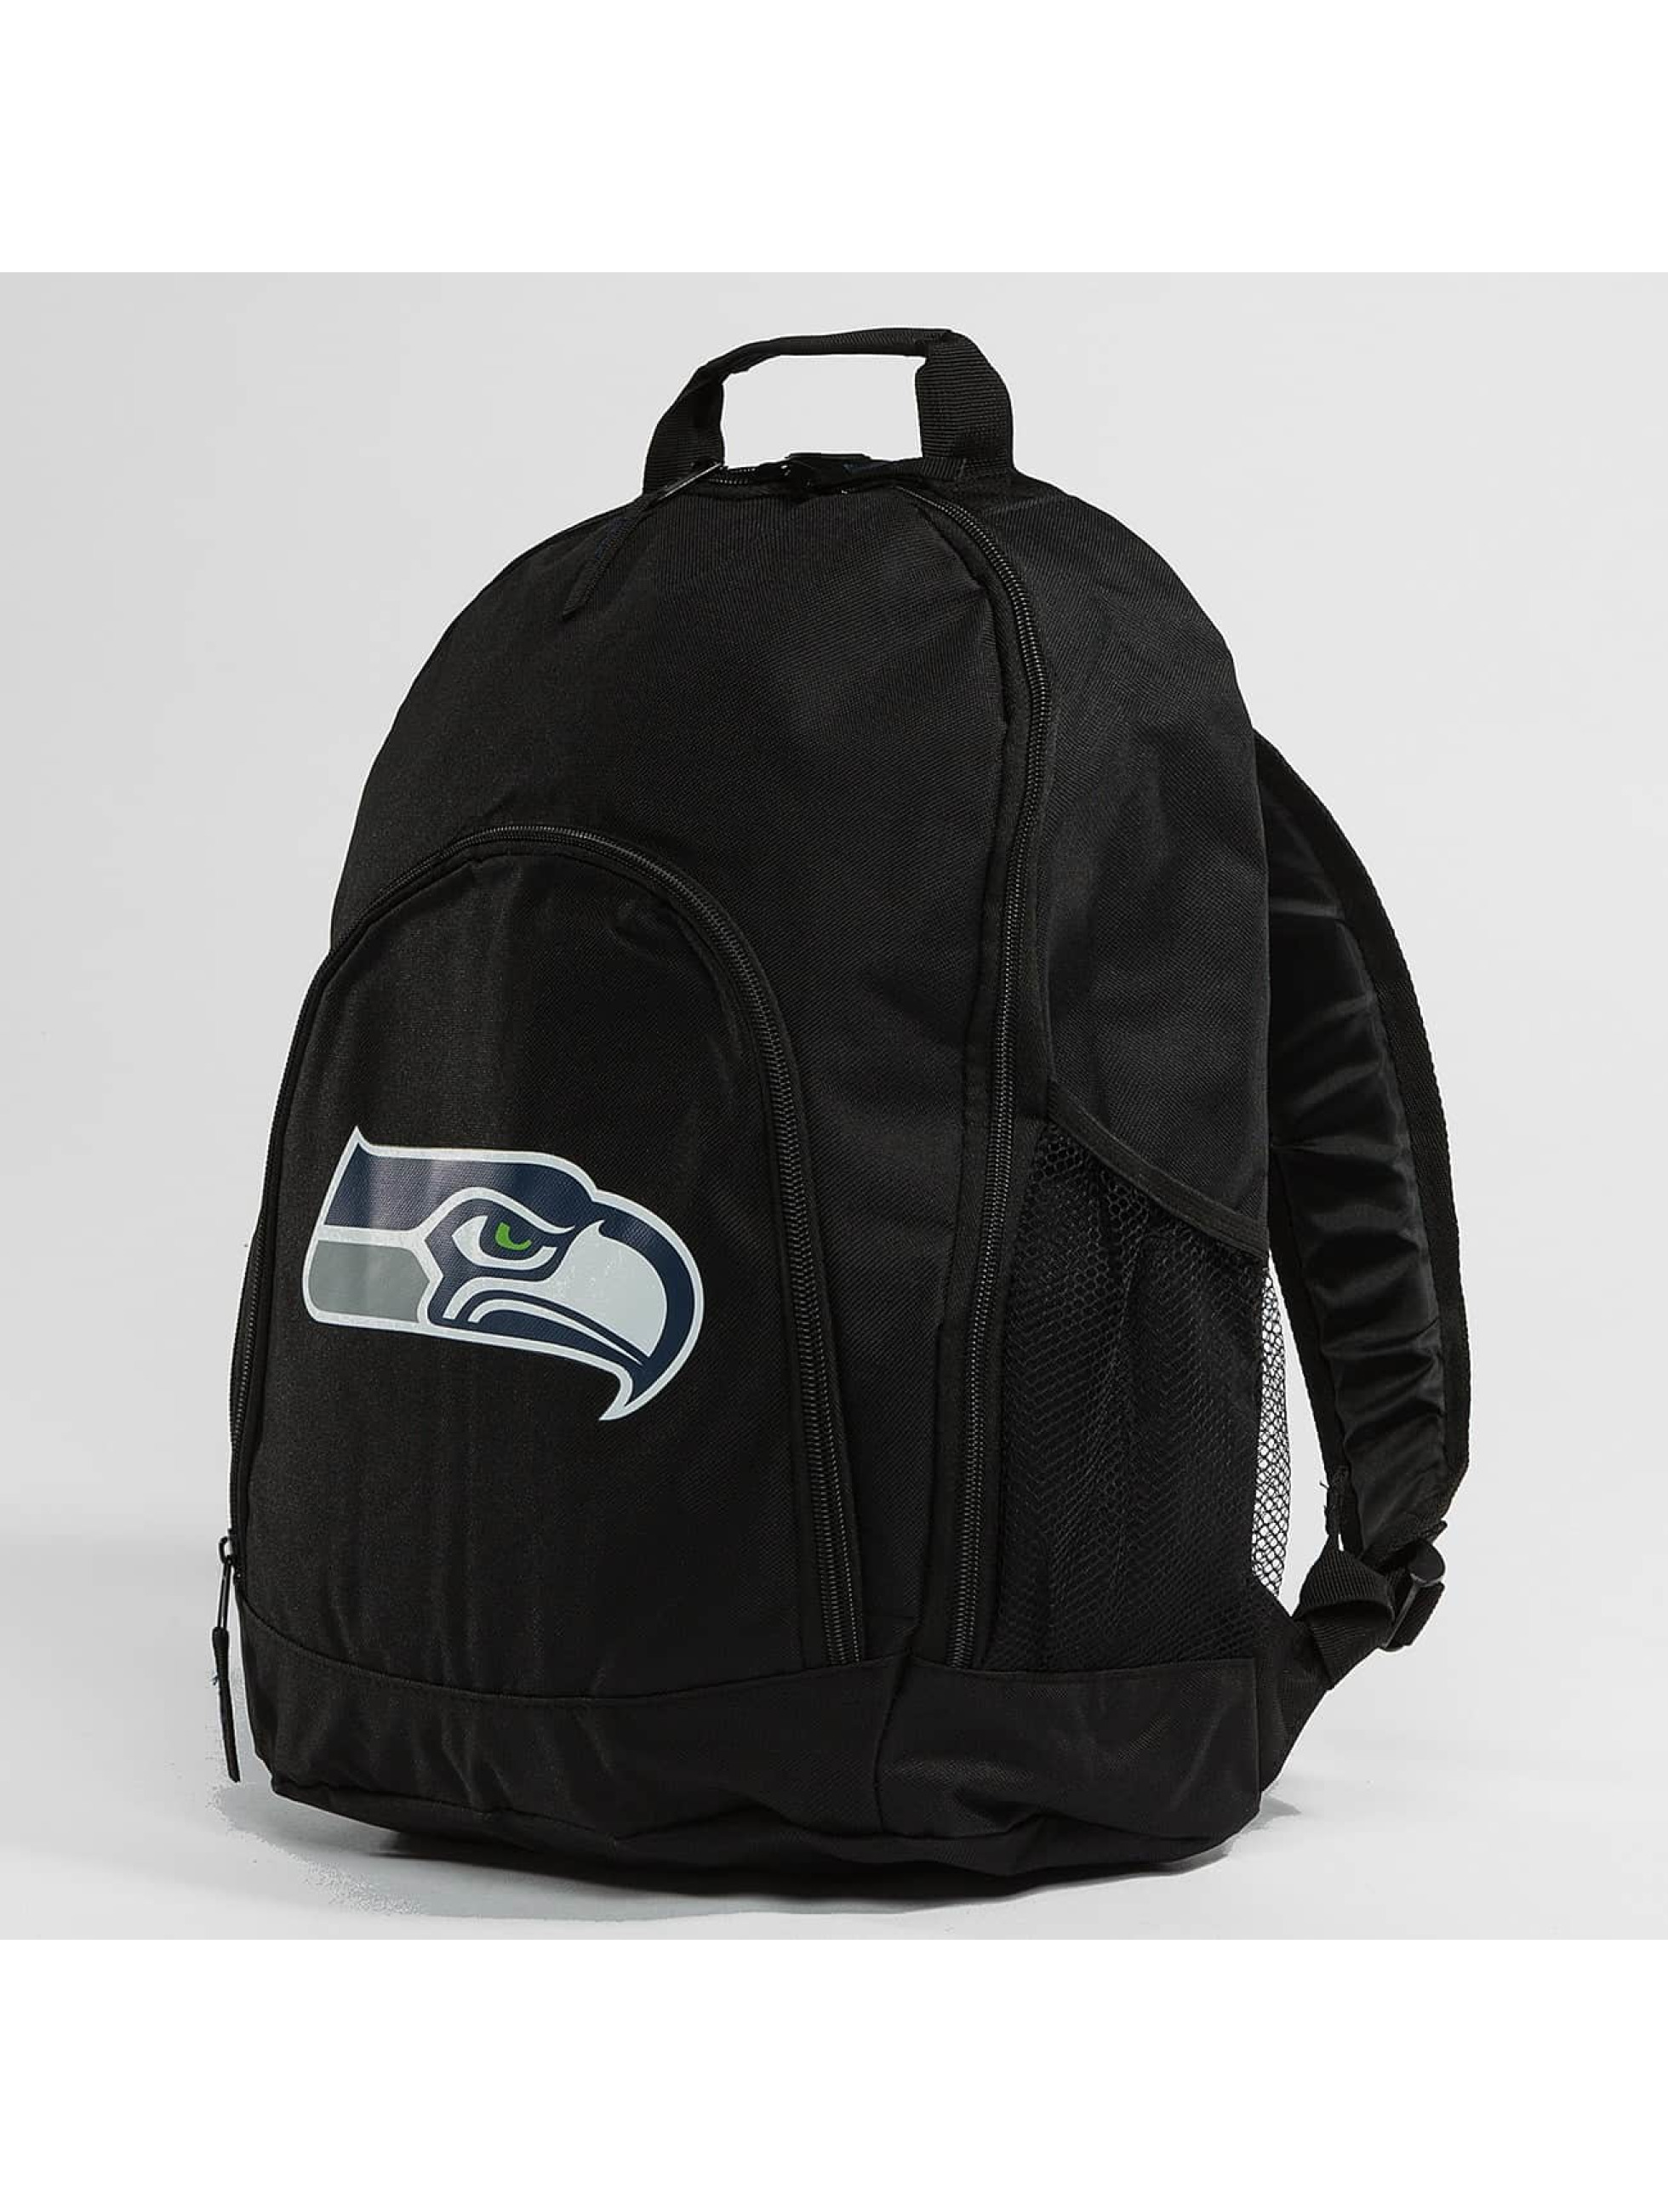 Forever Collectibles Rygsæk NFL Seattle Seahawks sort